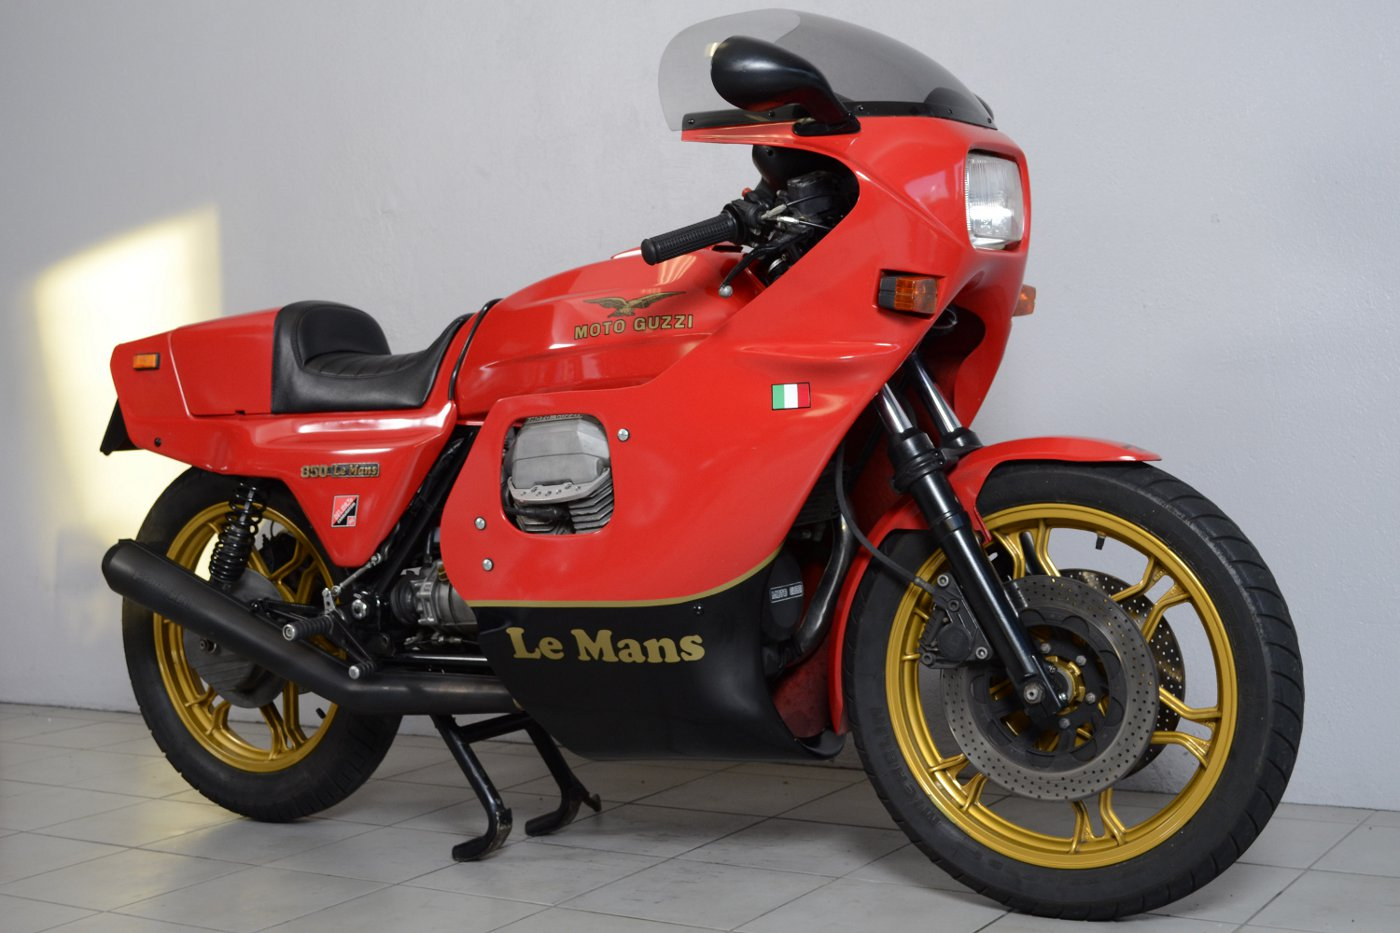 guzzi le mans moto bel 39 de 1983 d 39 occasion motos anciennes de collection italienne motos vendues. Black Bedroom Furniture Sets. Home Design Ideas